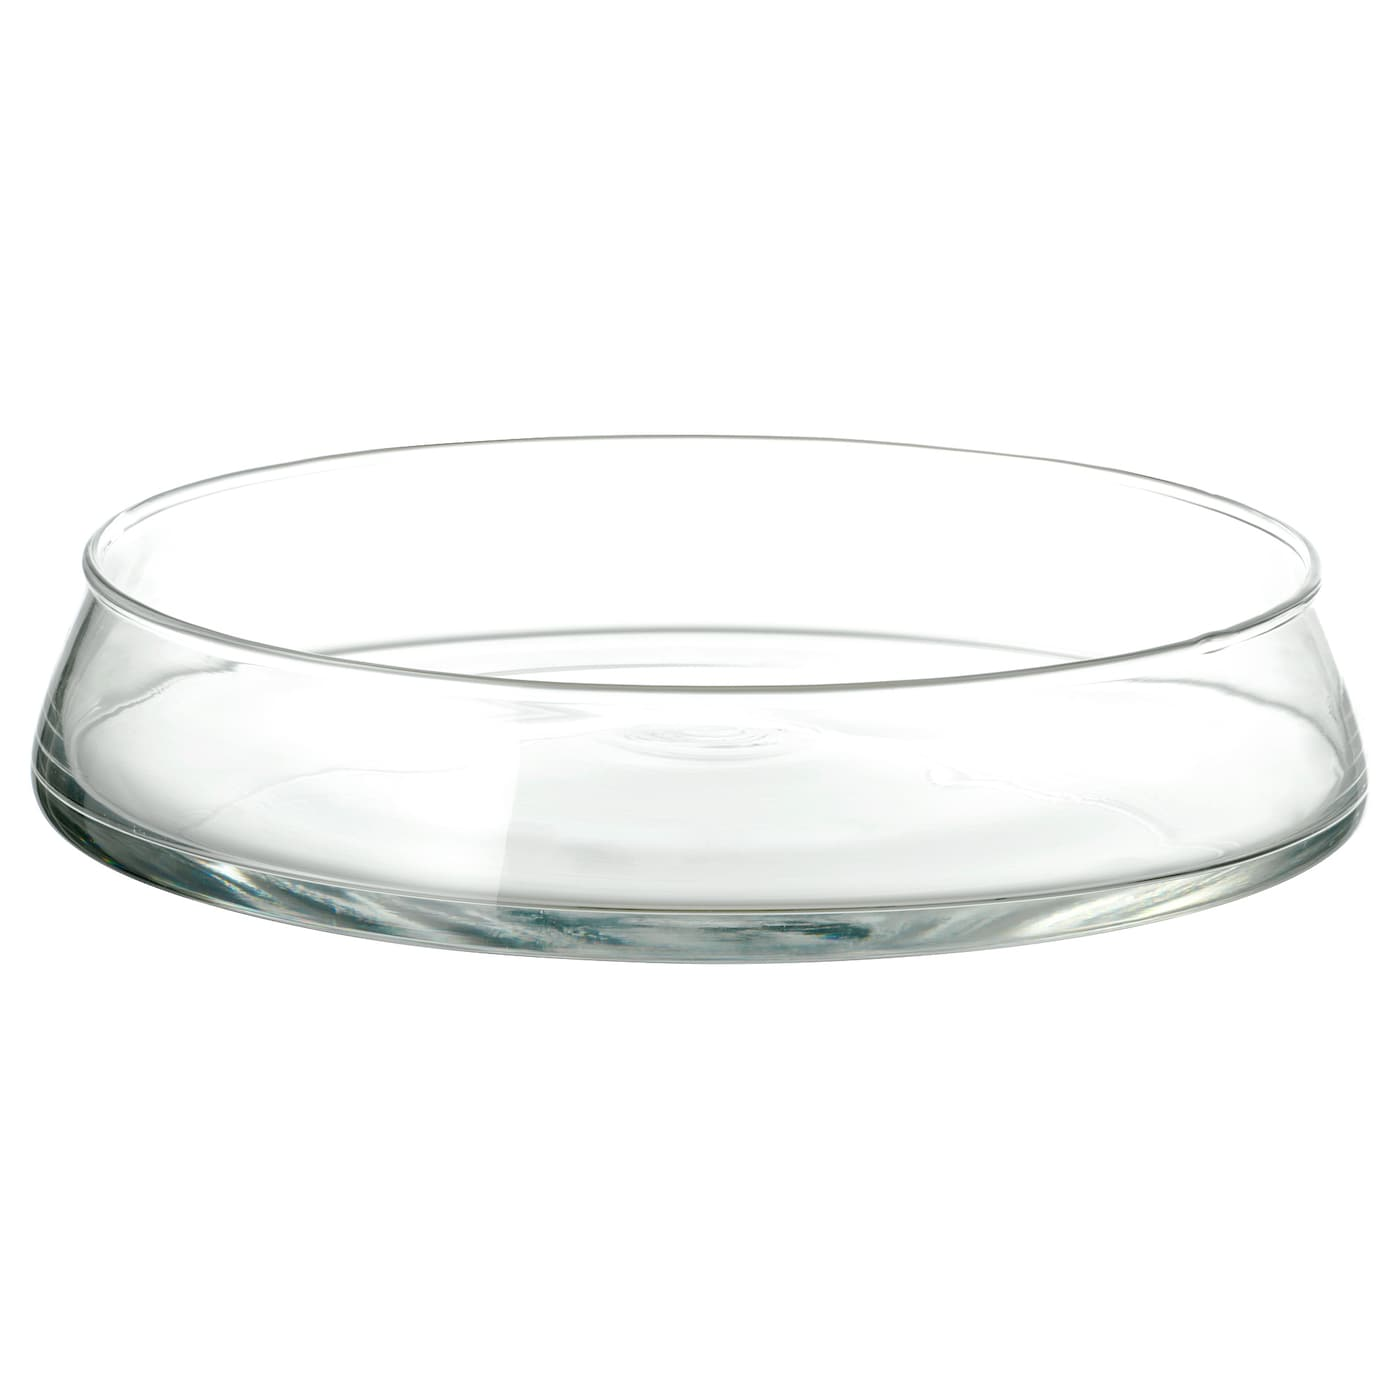 IKEA TIDVATTEN bowl The glass bowl is mouth blown by a skilled craftsperson.